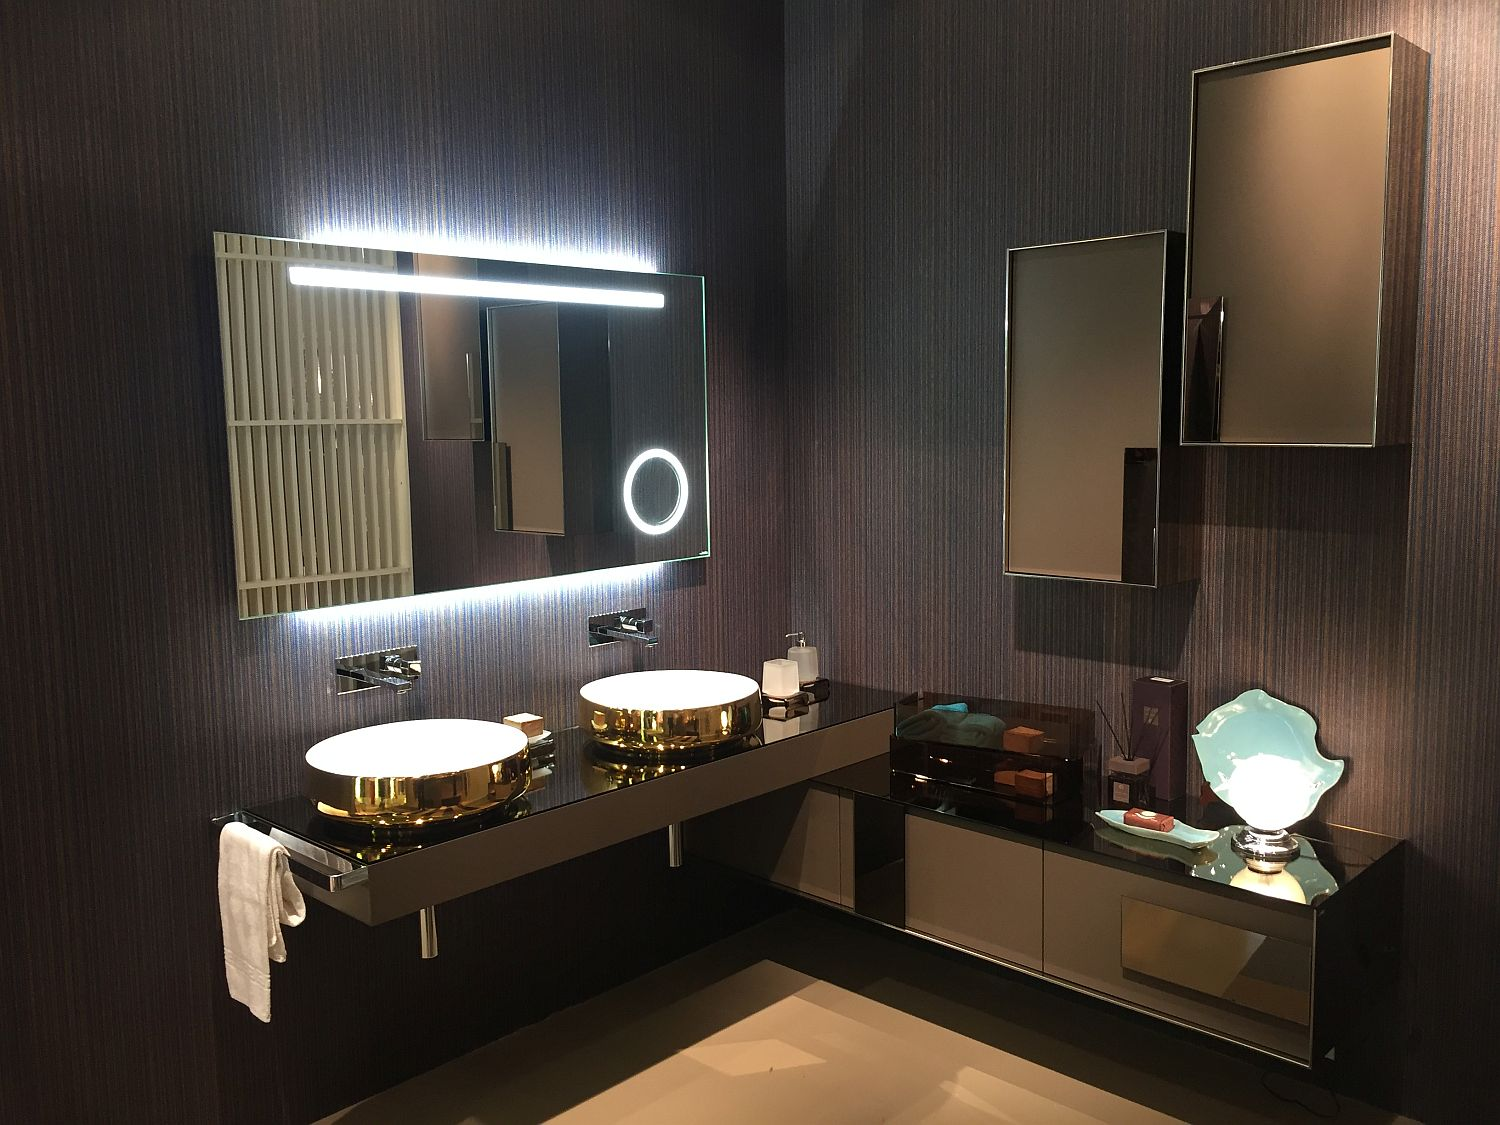 exquisite contemporary bathroom vanities with space-savvy style ztozkek